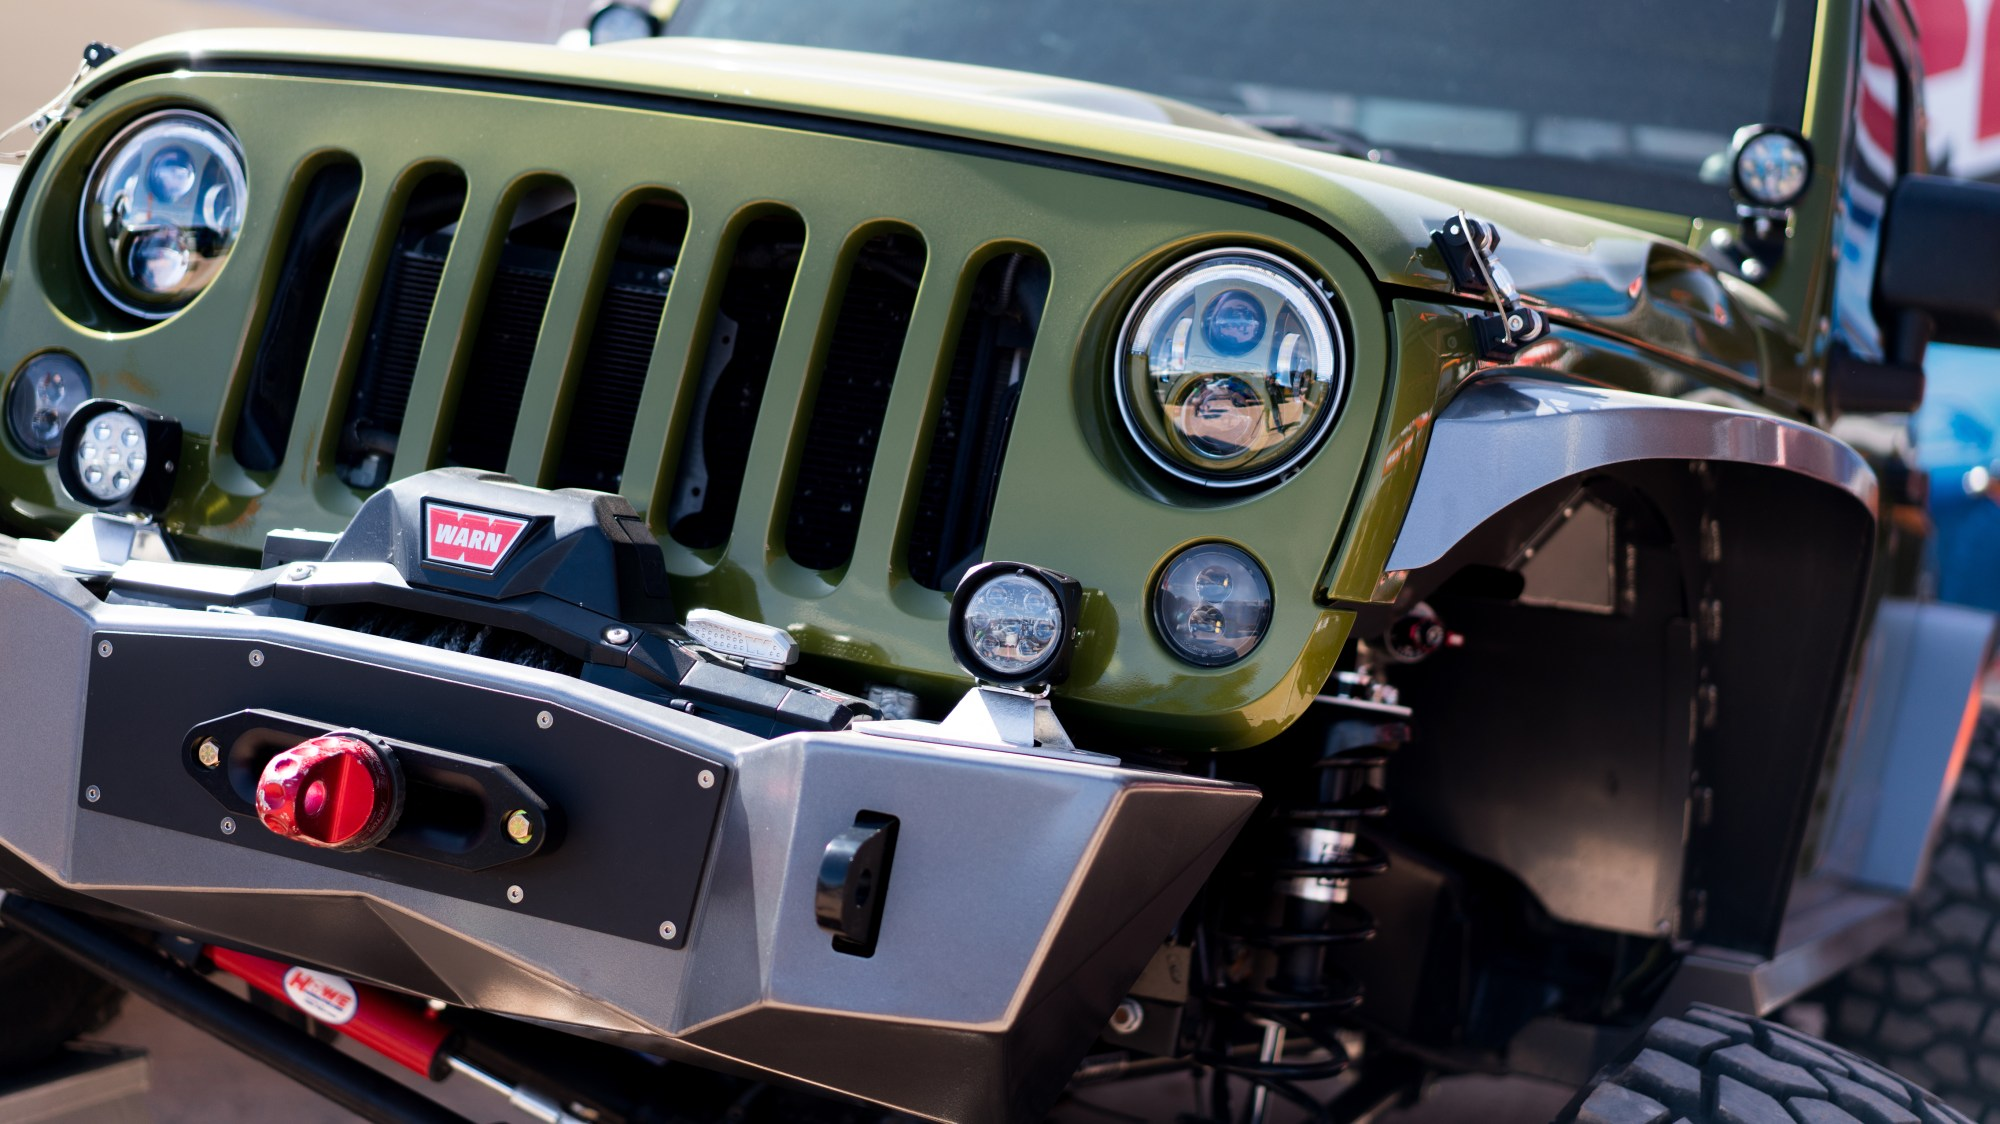 hight resolution of at the vendor show we debuted two new exciting products our model 4418 auxiliary light and our model 8700 evo 2r headlight for the jeep renegade